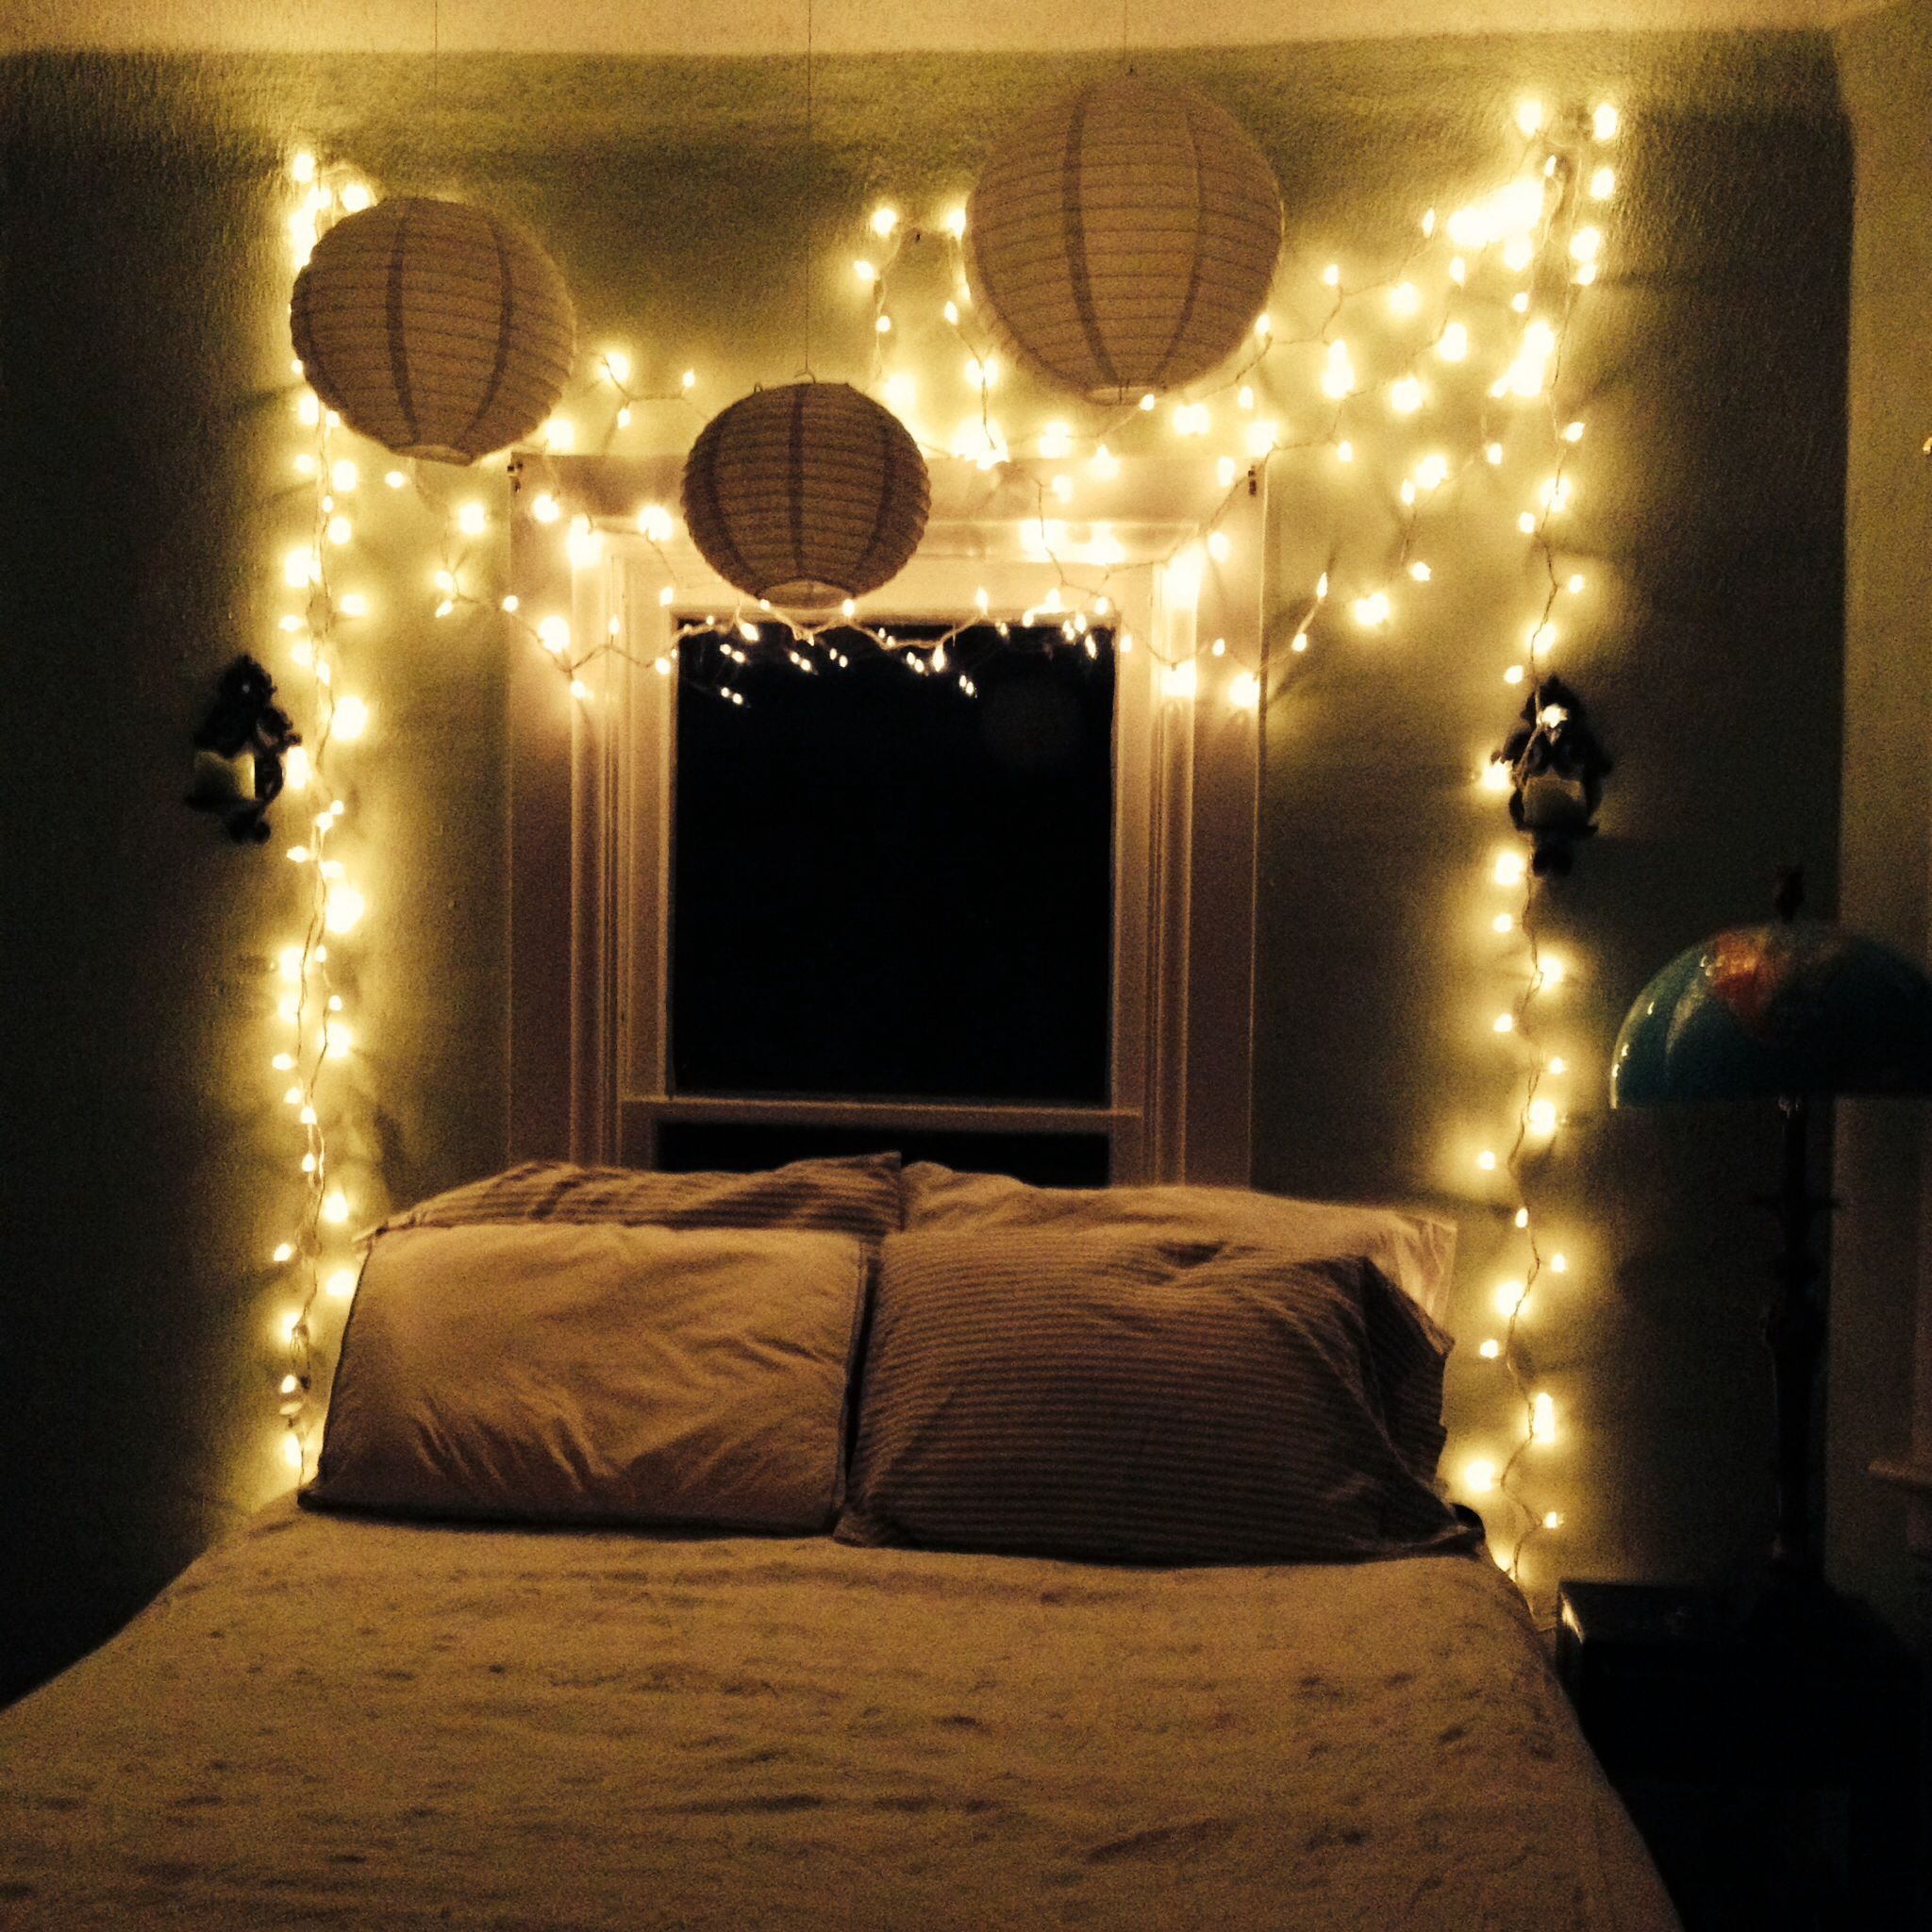 Bedroom wall string lights - White Christmas Lights In Bedroom Beautiful Bedroom Decor